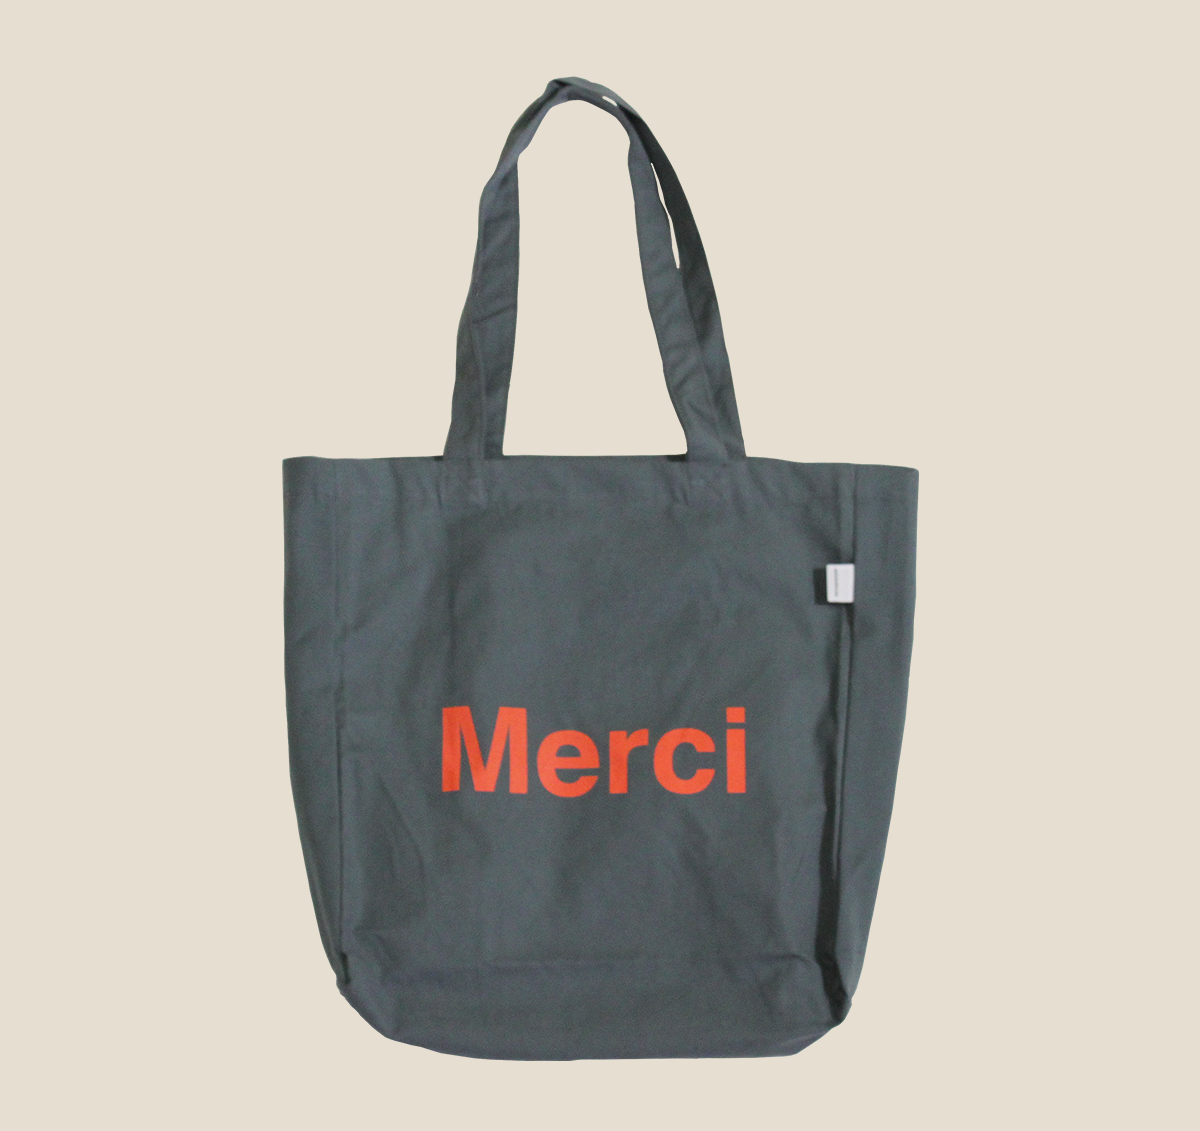 Merci (Thank You) Tote - available in 3 colors